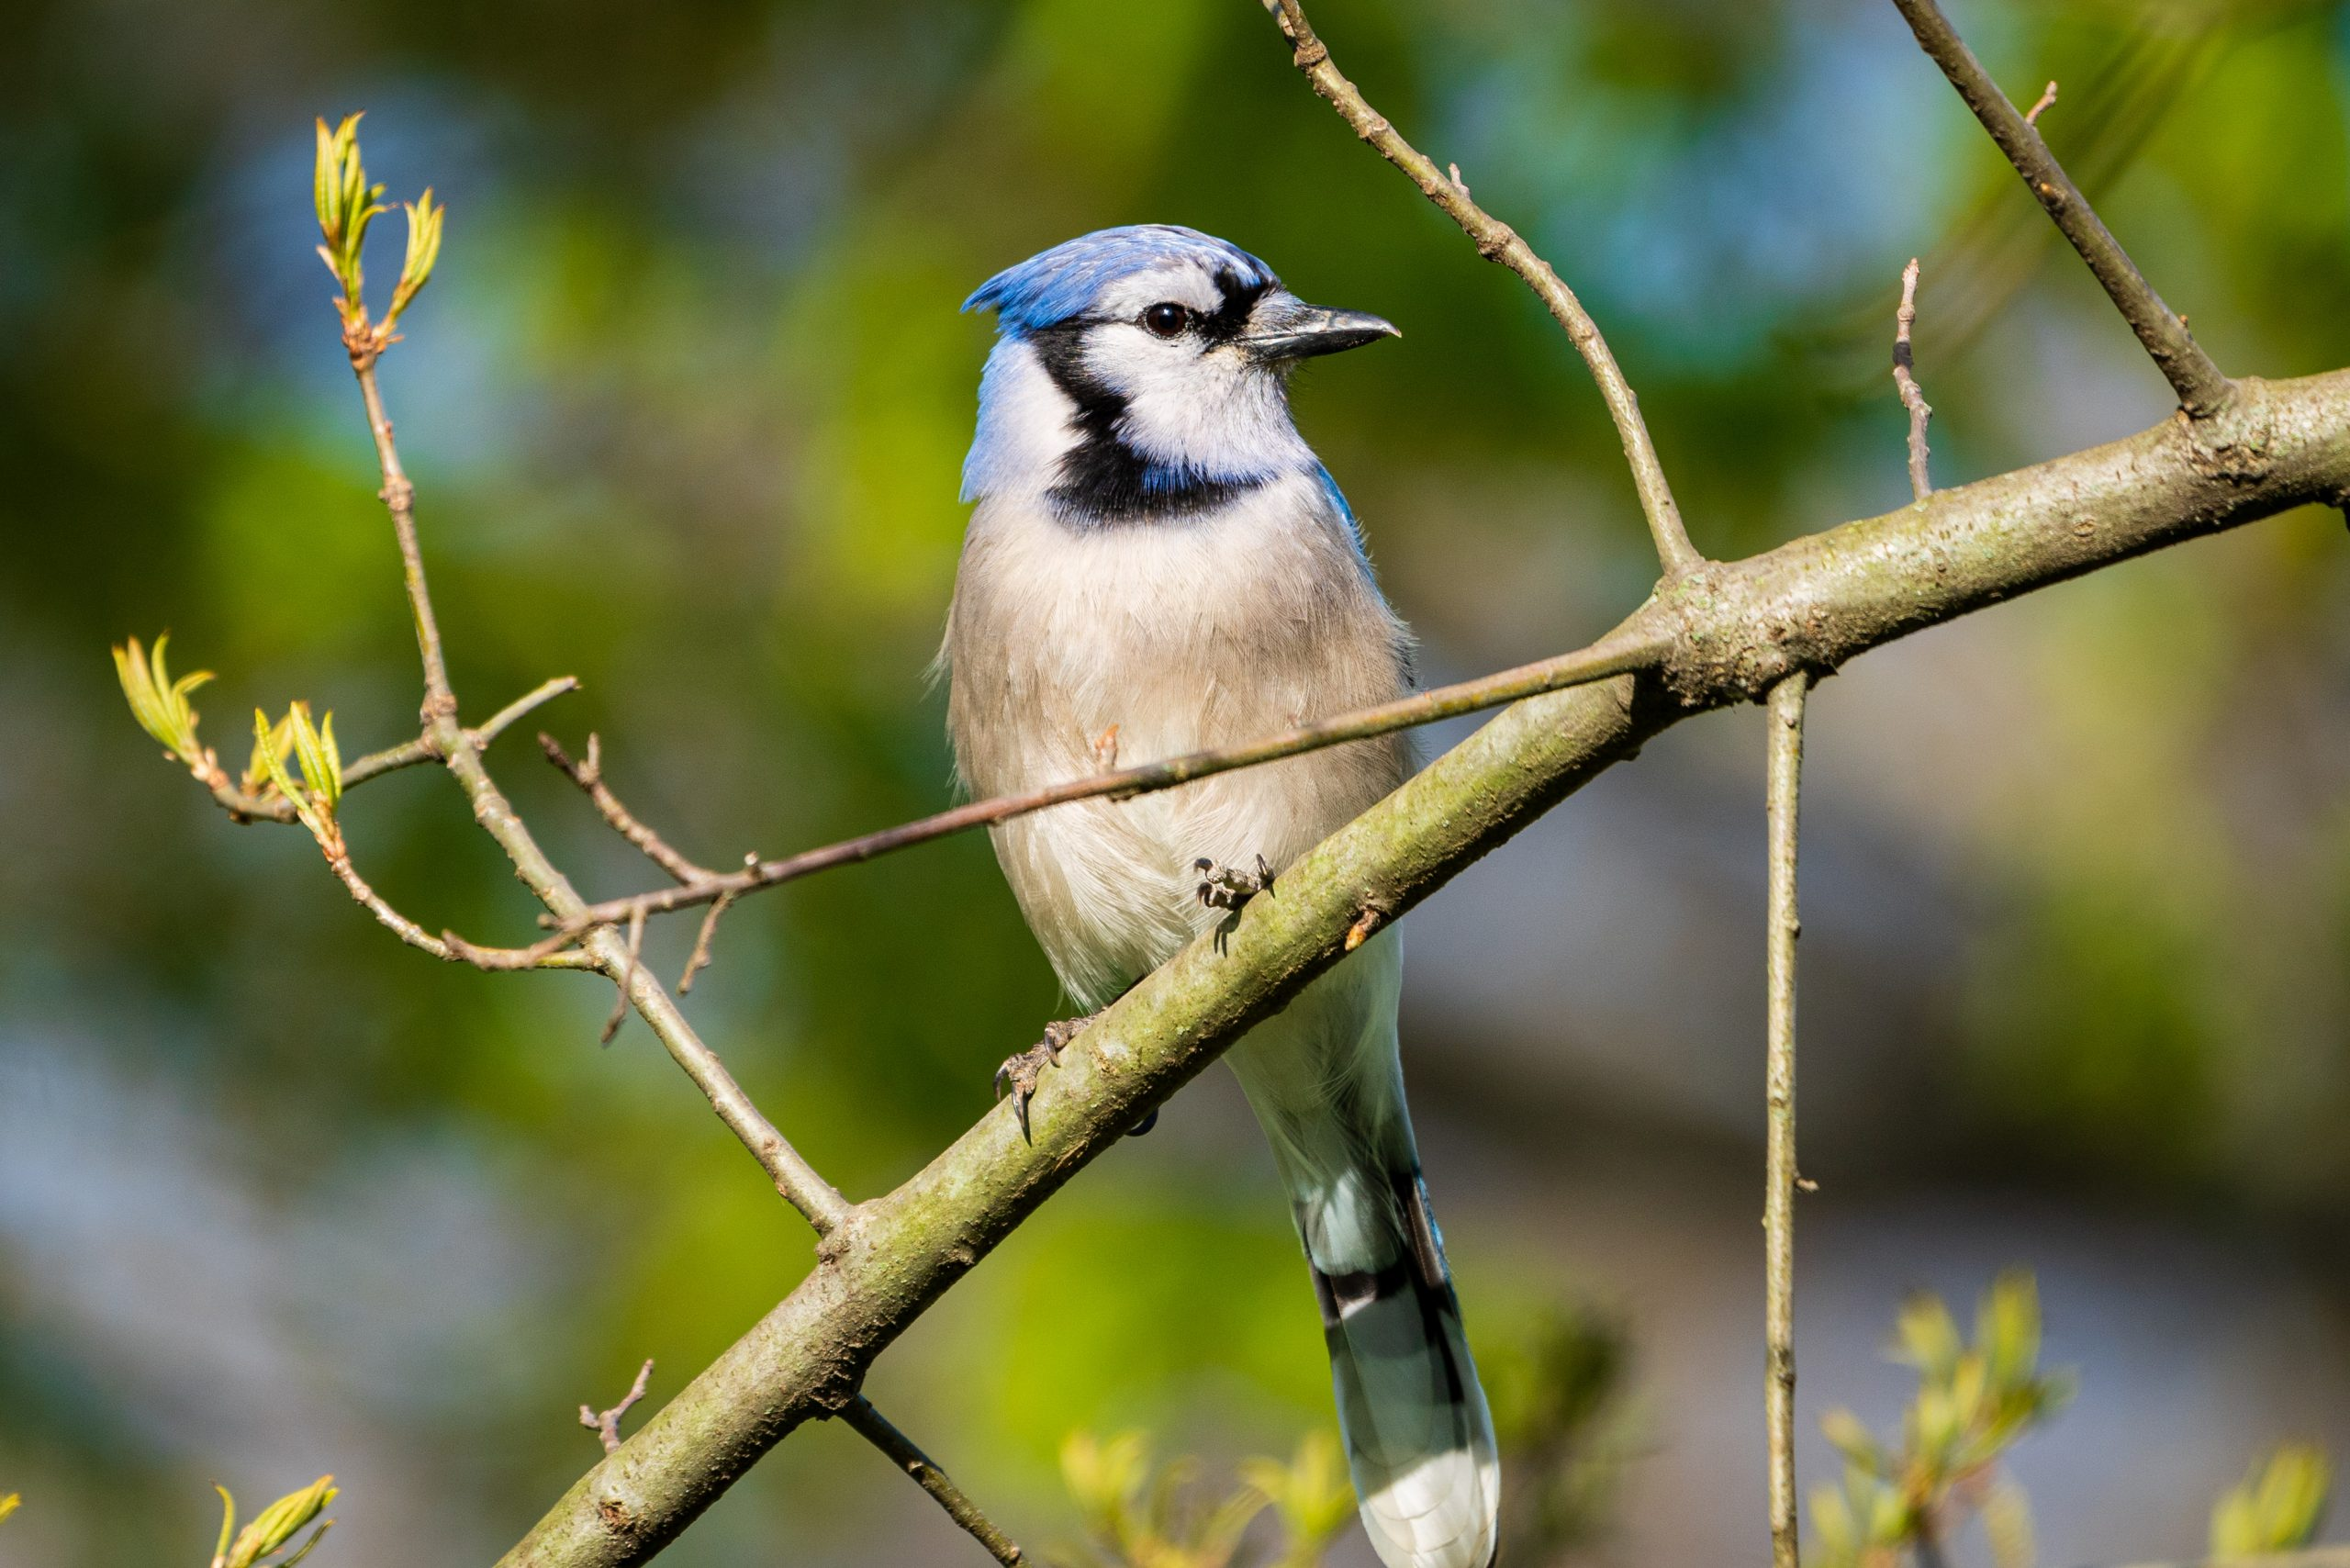 A blue jay sits on a branch.